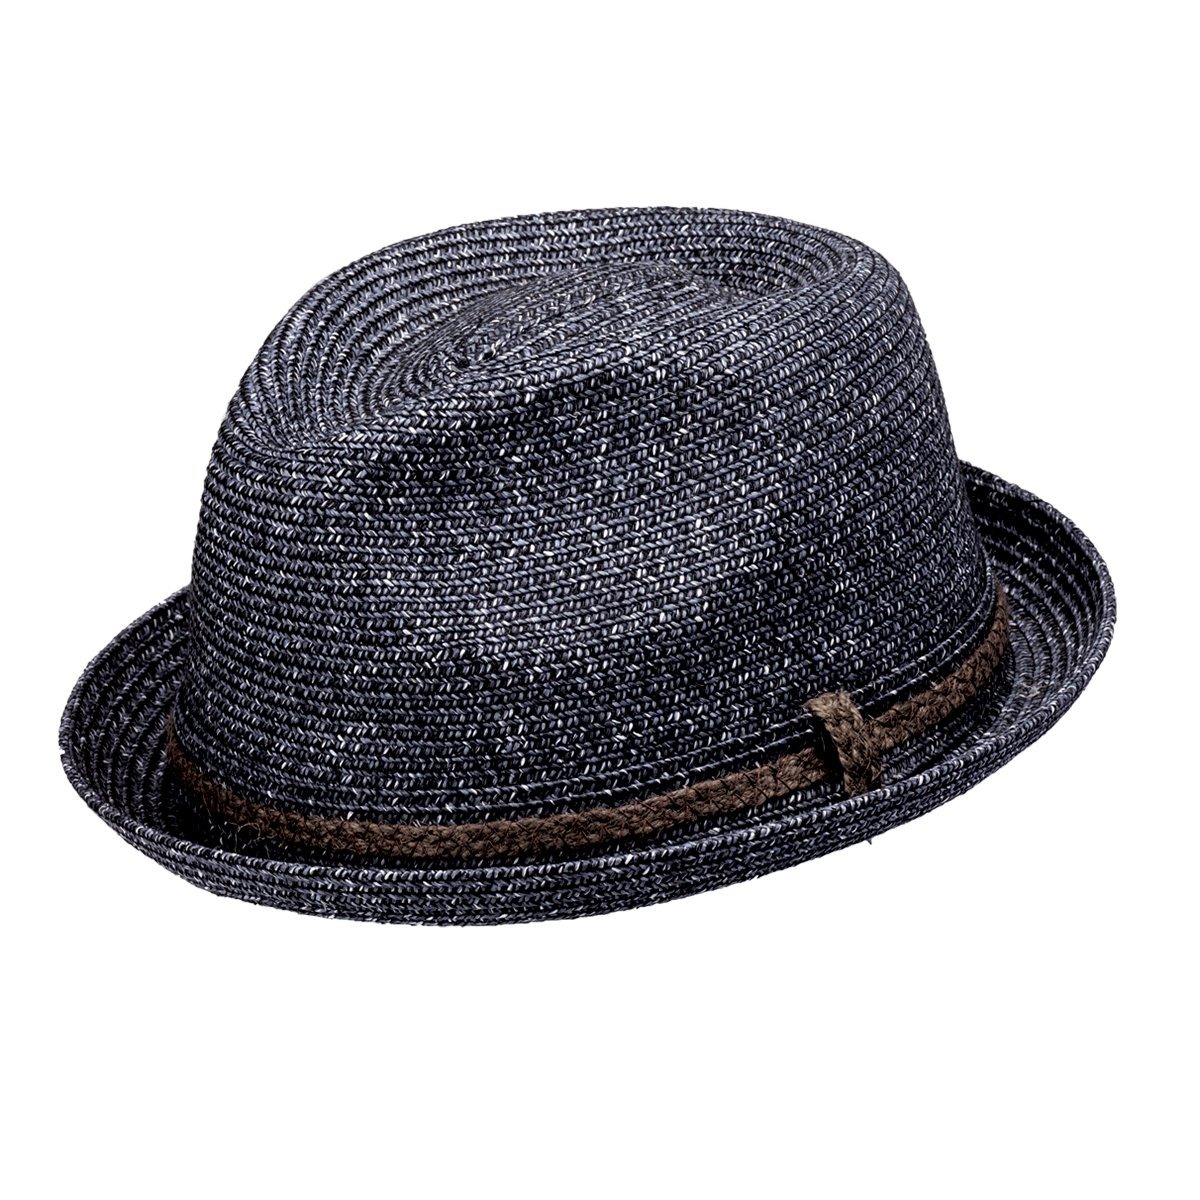 Peter Grimm Tiller Knit Upturn Fedora Hat at Amazon Men s Clothing store  90dd09fbd14